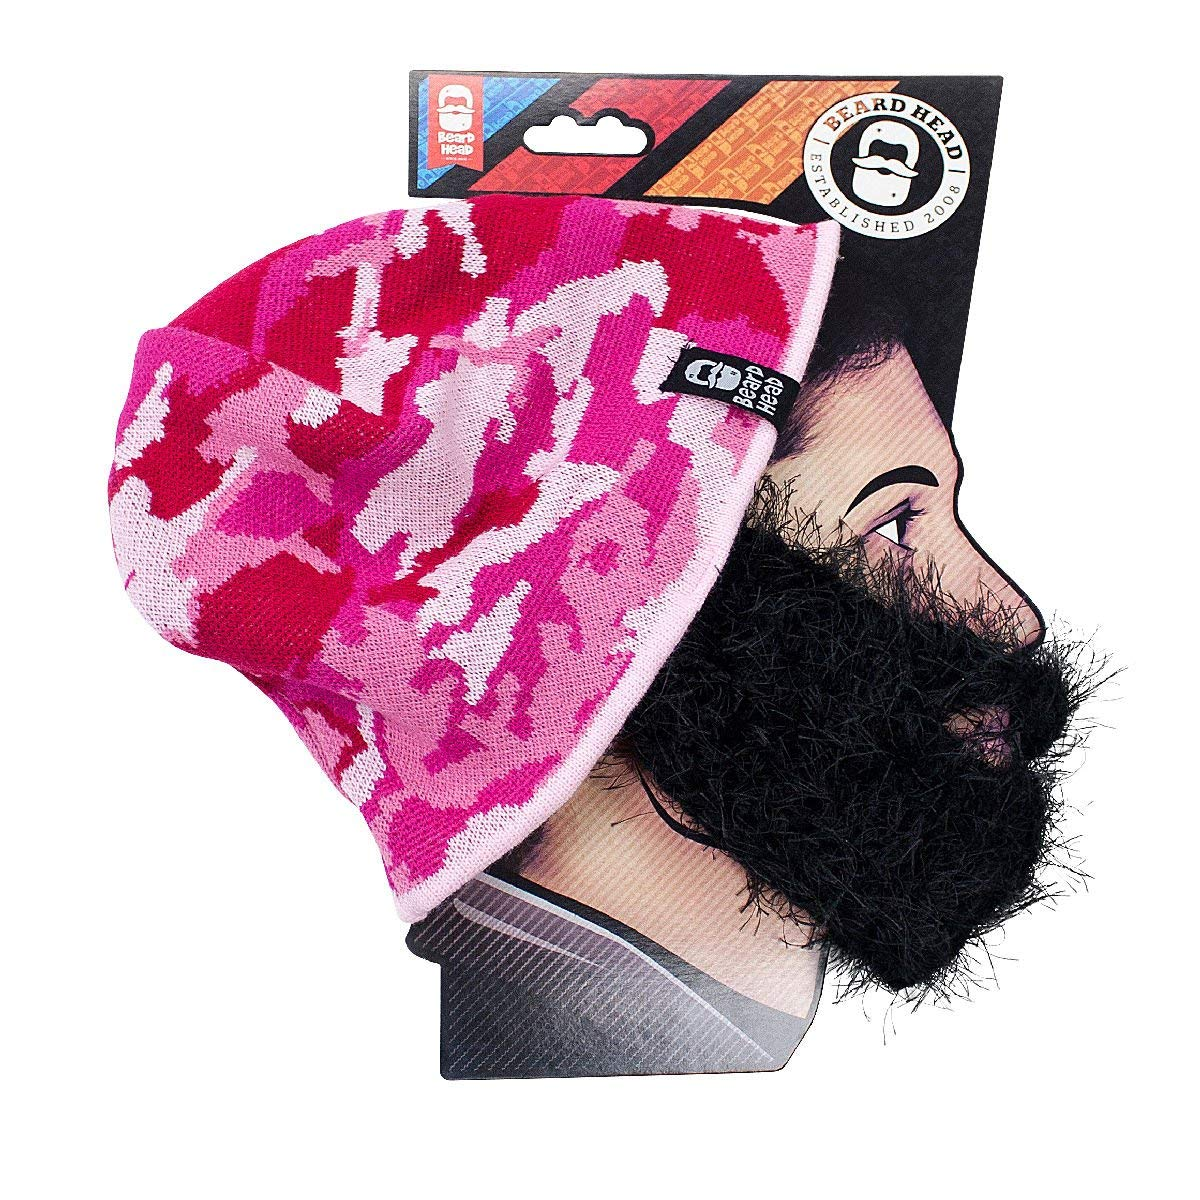 cec6dca45bb Get Quotations · Beard Head - The Original Bushy Jaye Knit Beard Beanie